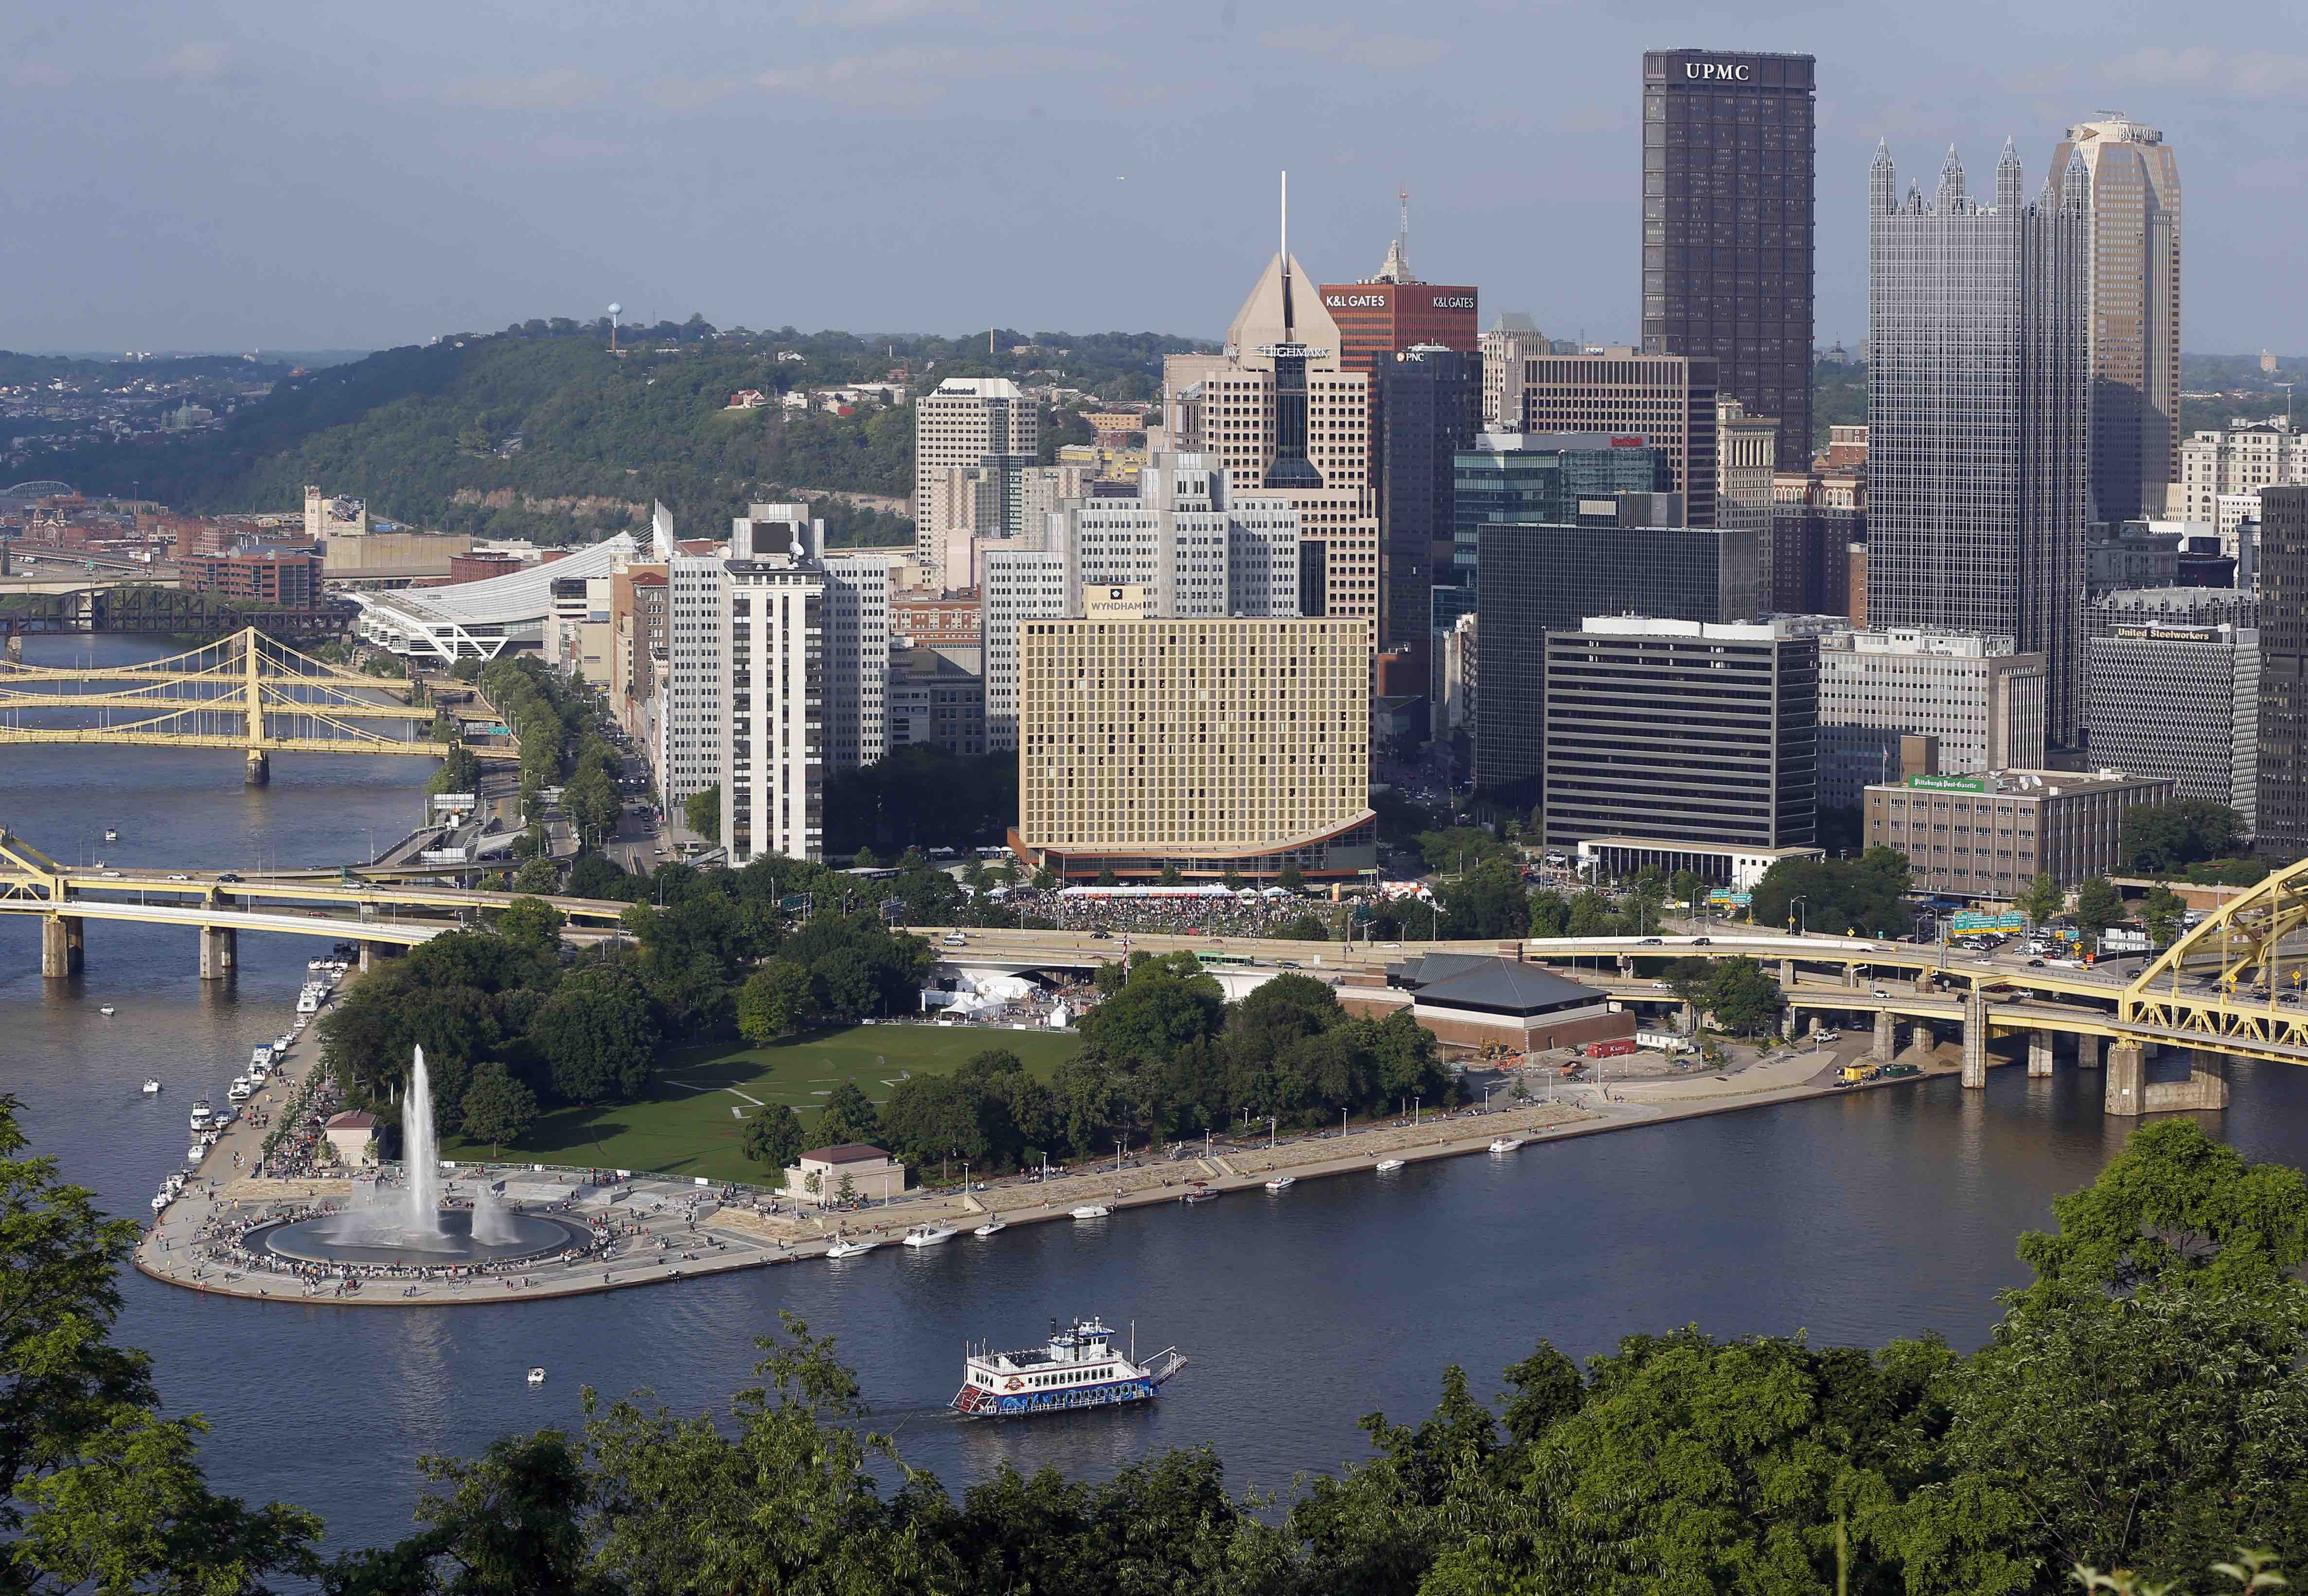 The Pittsburgh skyline raises above the newly renovated fountain at Point State Park, left, on Saturday, June 8, 2013, in Pittsburgh. The iconic fountain at the confluence where the Allegheny and Monongahela Rivers meet to form the Ohio River, was originally opened in 1974. It had been shut off since 2009 and was reopened on Friday, June 7, 2013 after it underwent an $11.9 million restoration. (AP Photo/Keith Srakocic)